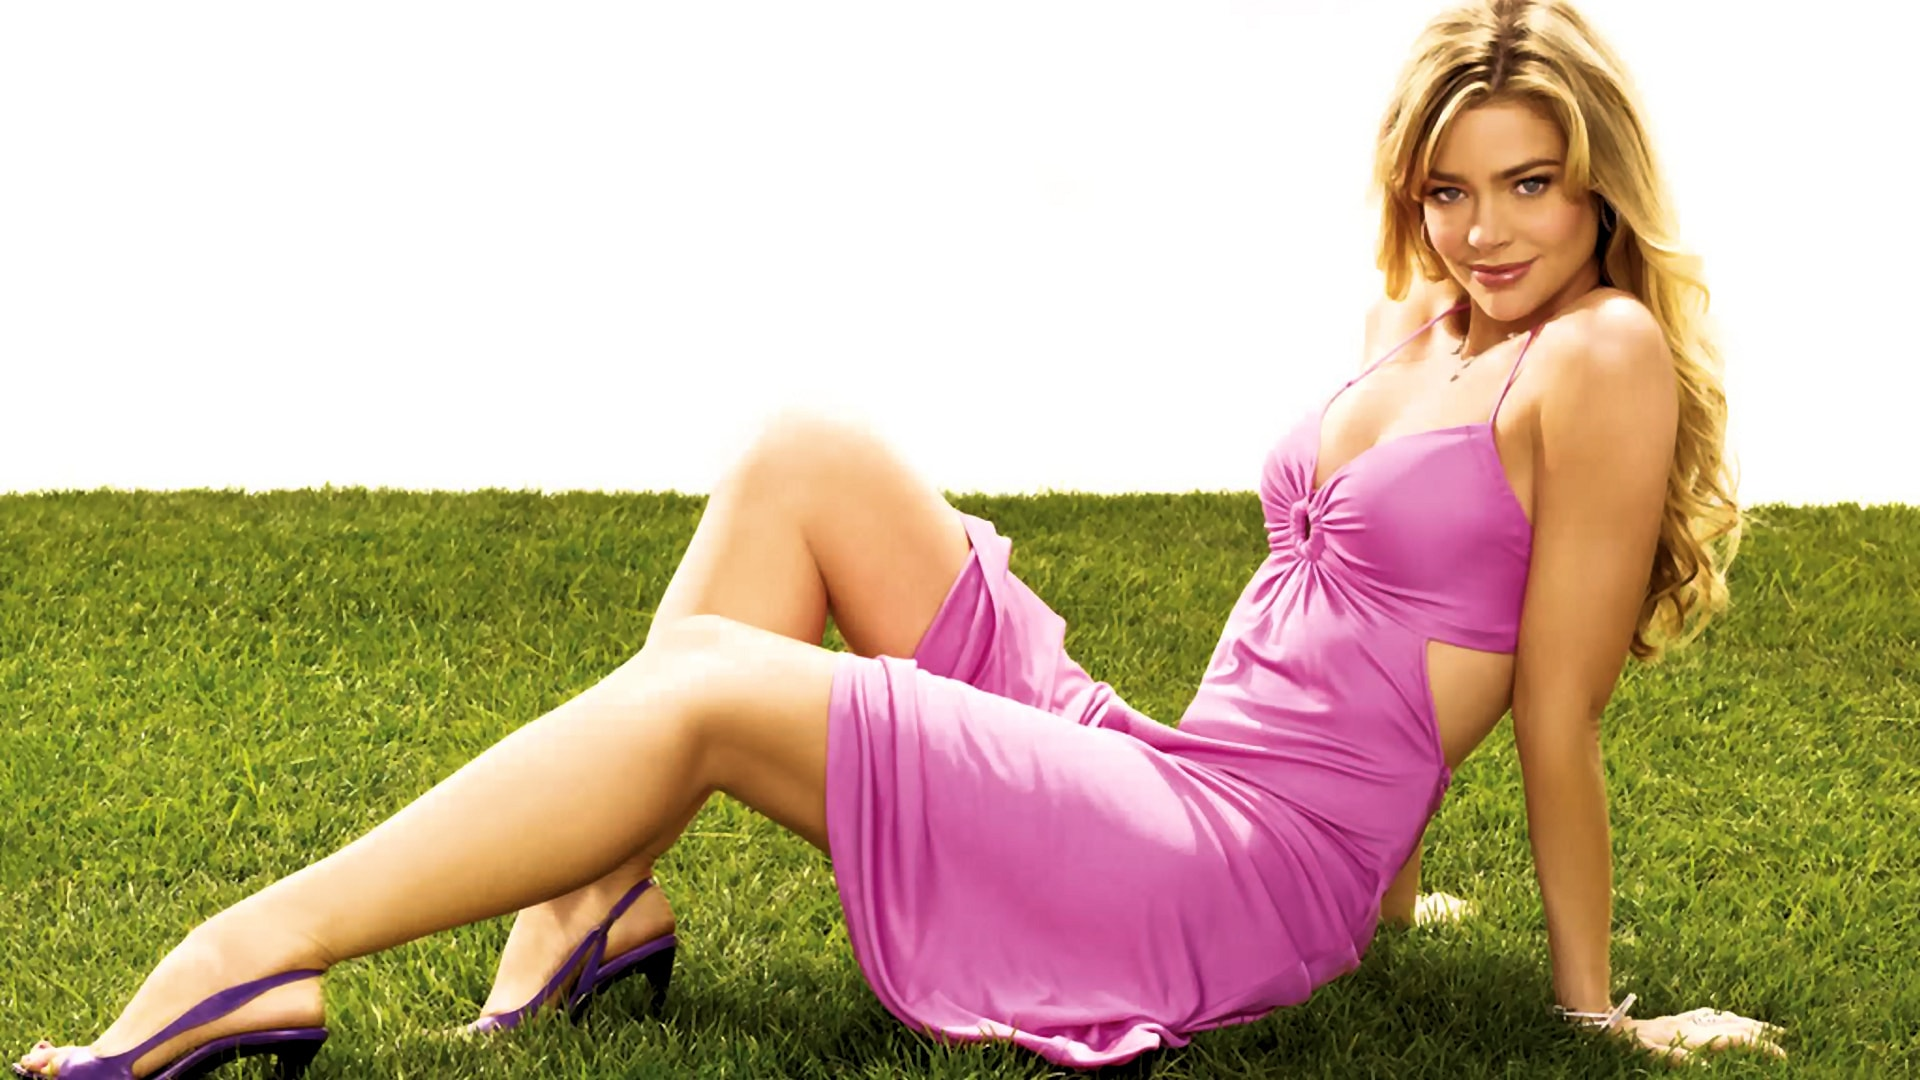 Denise Richards Desktop wallpaper